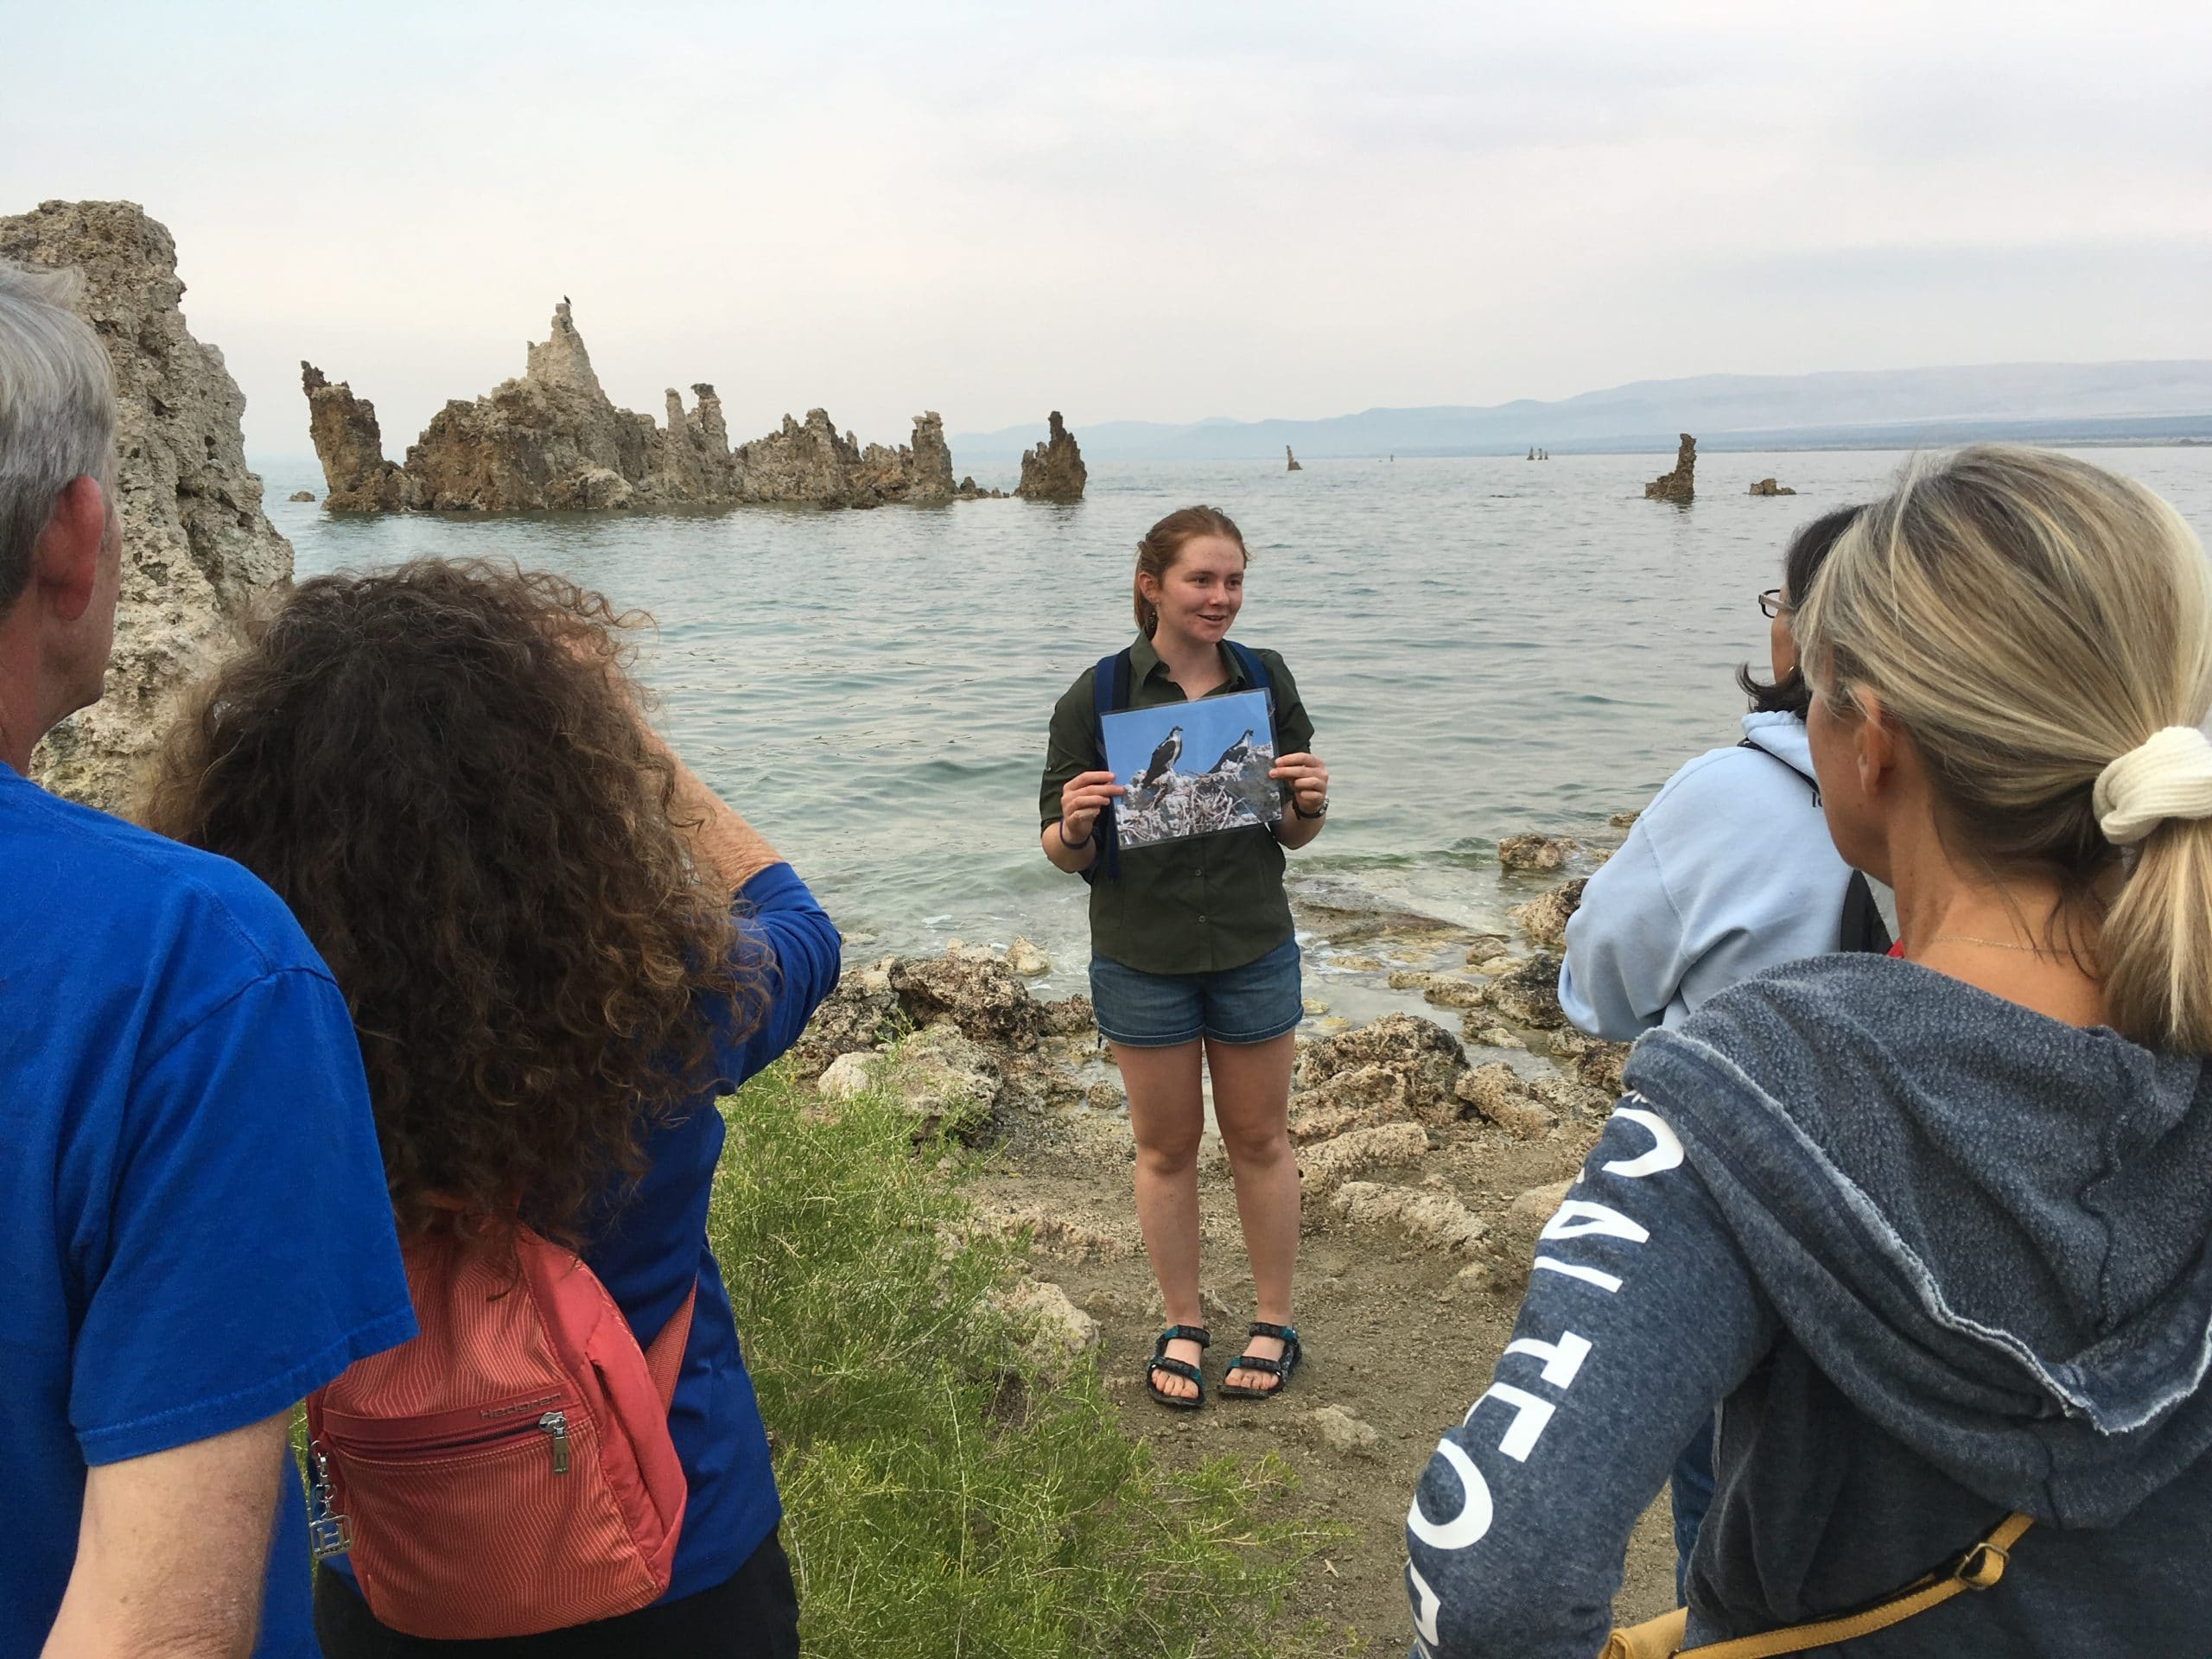 Four people gather around a guide holding a photograph of two large fish eating hawks, Osprey, as she stands on the shore of Mono Lake with the lake in the background and a large island of tufa towers sticking up out of the water in the distance.